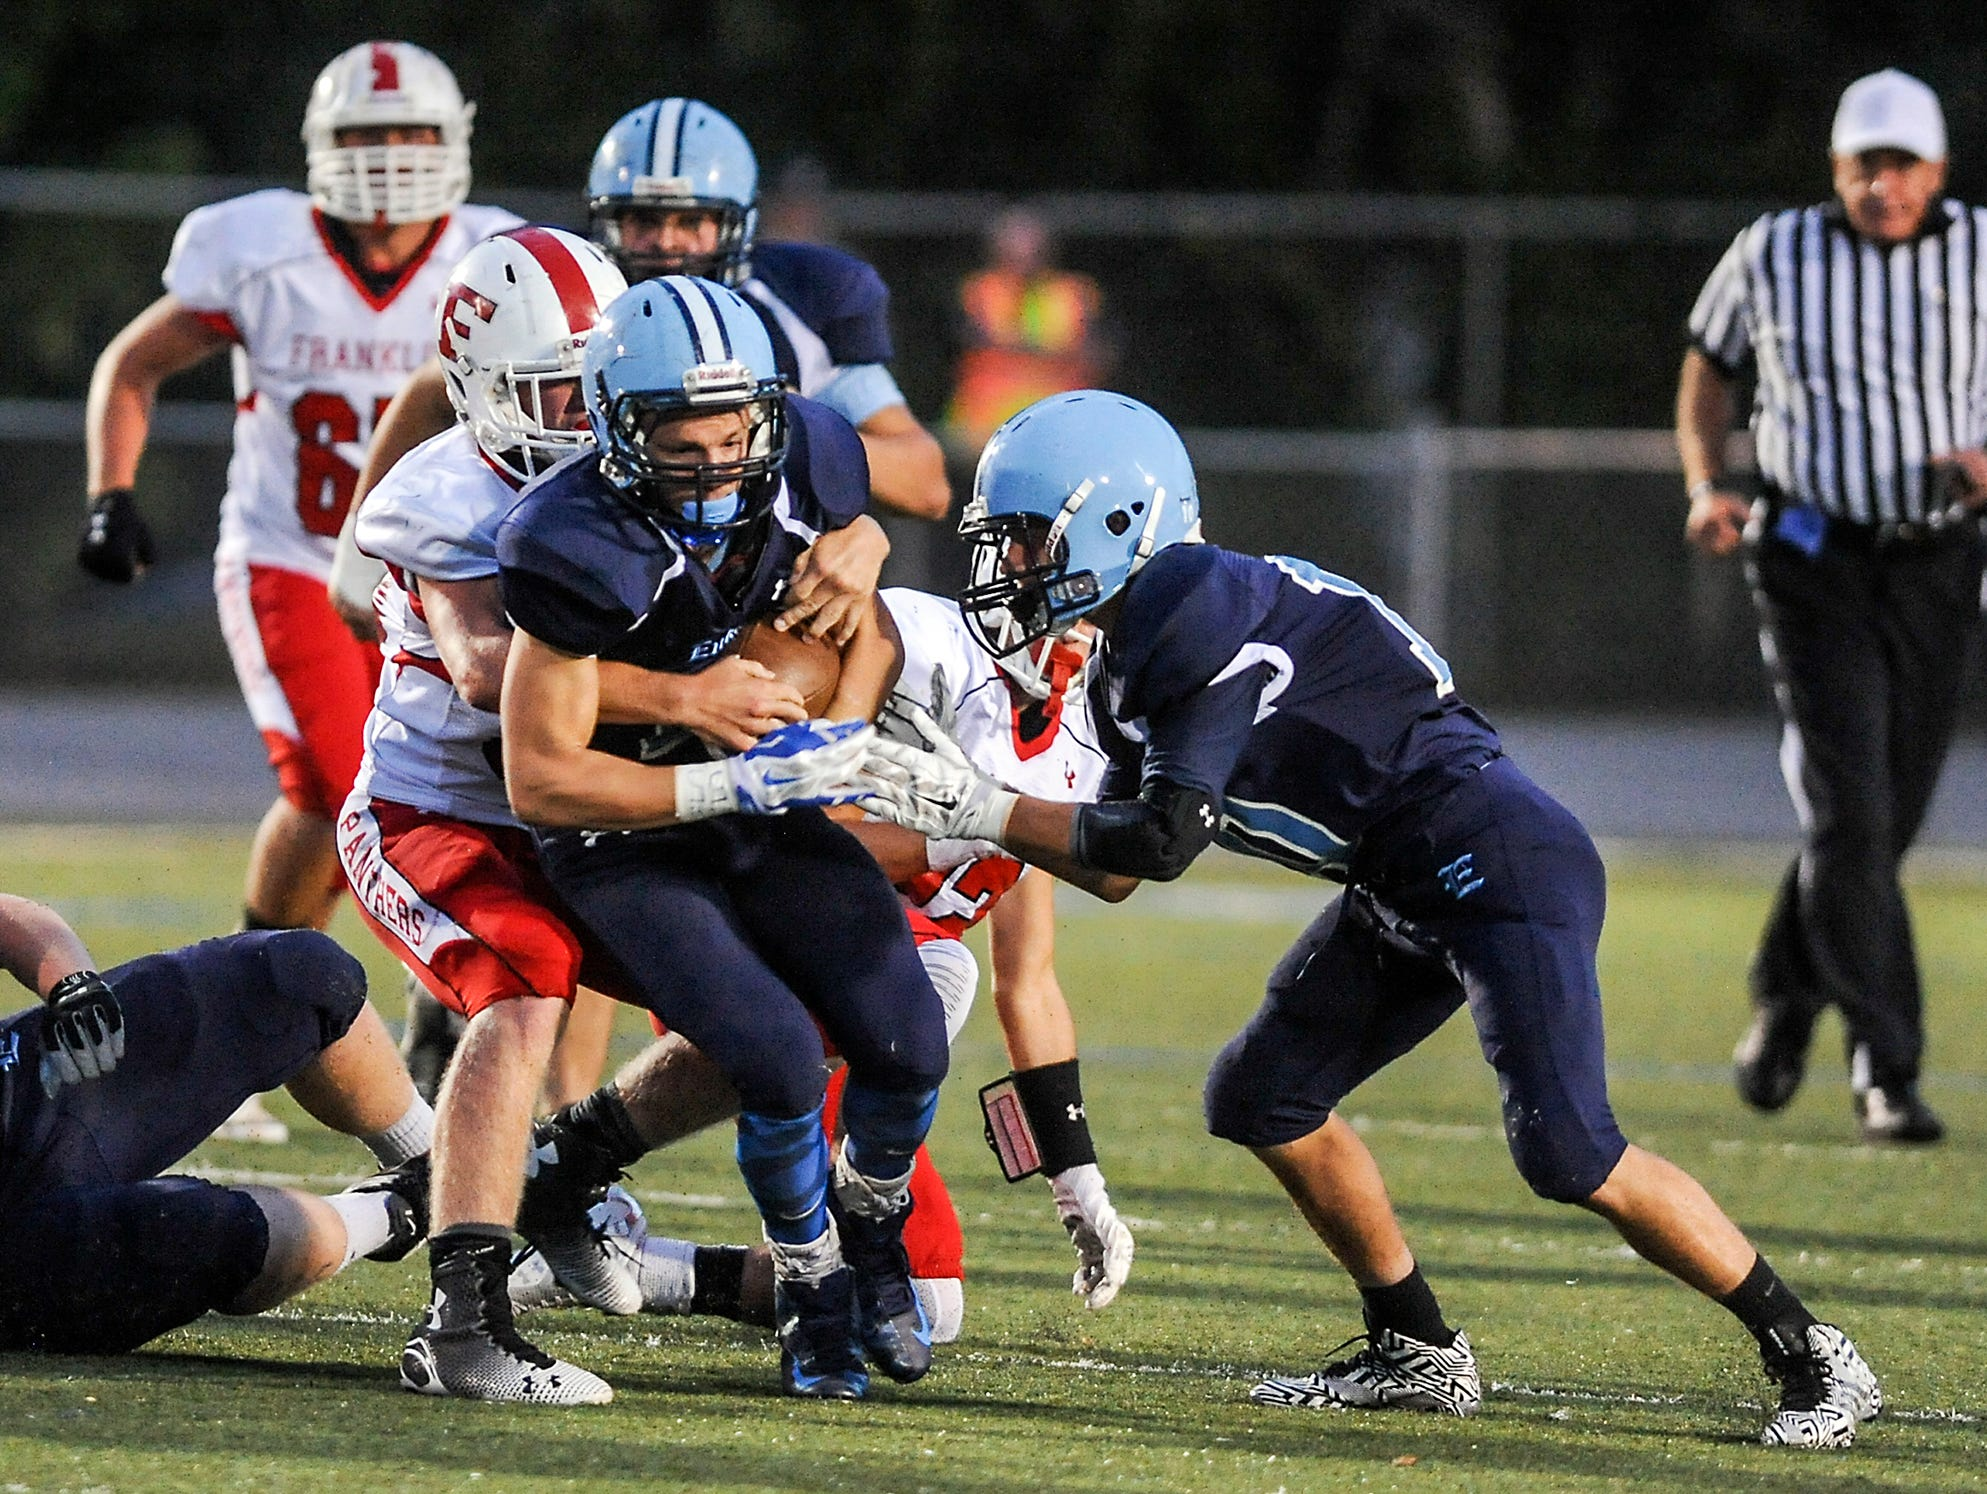 Senior running back/safety Michael Cantrell is one of the returning players for the Enka football team.